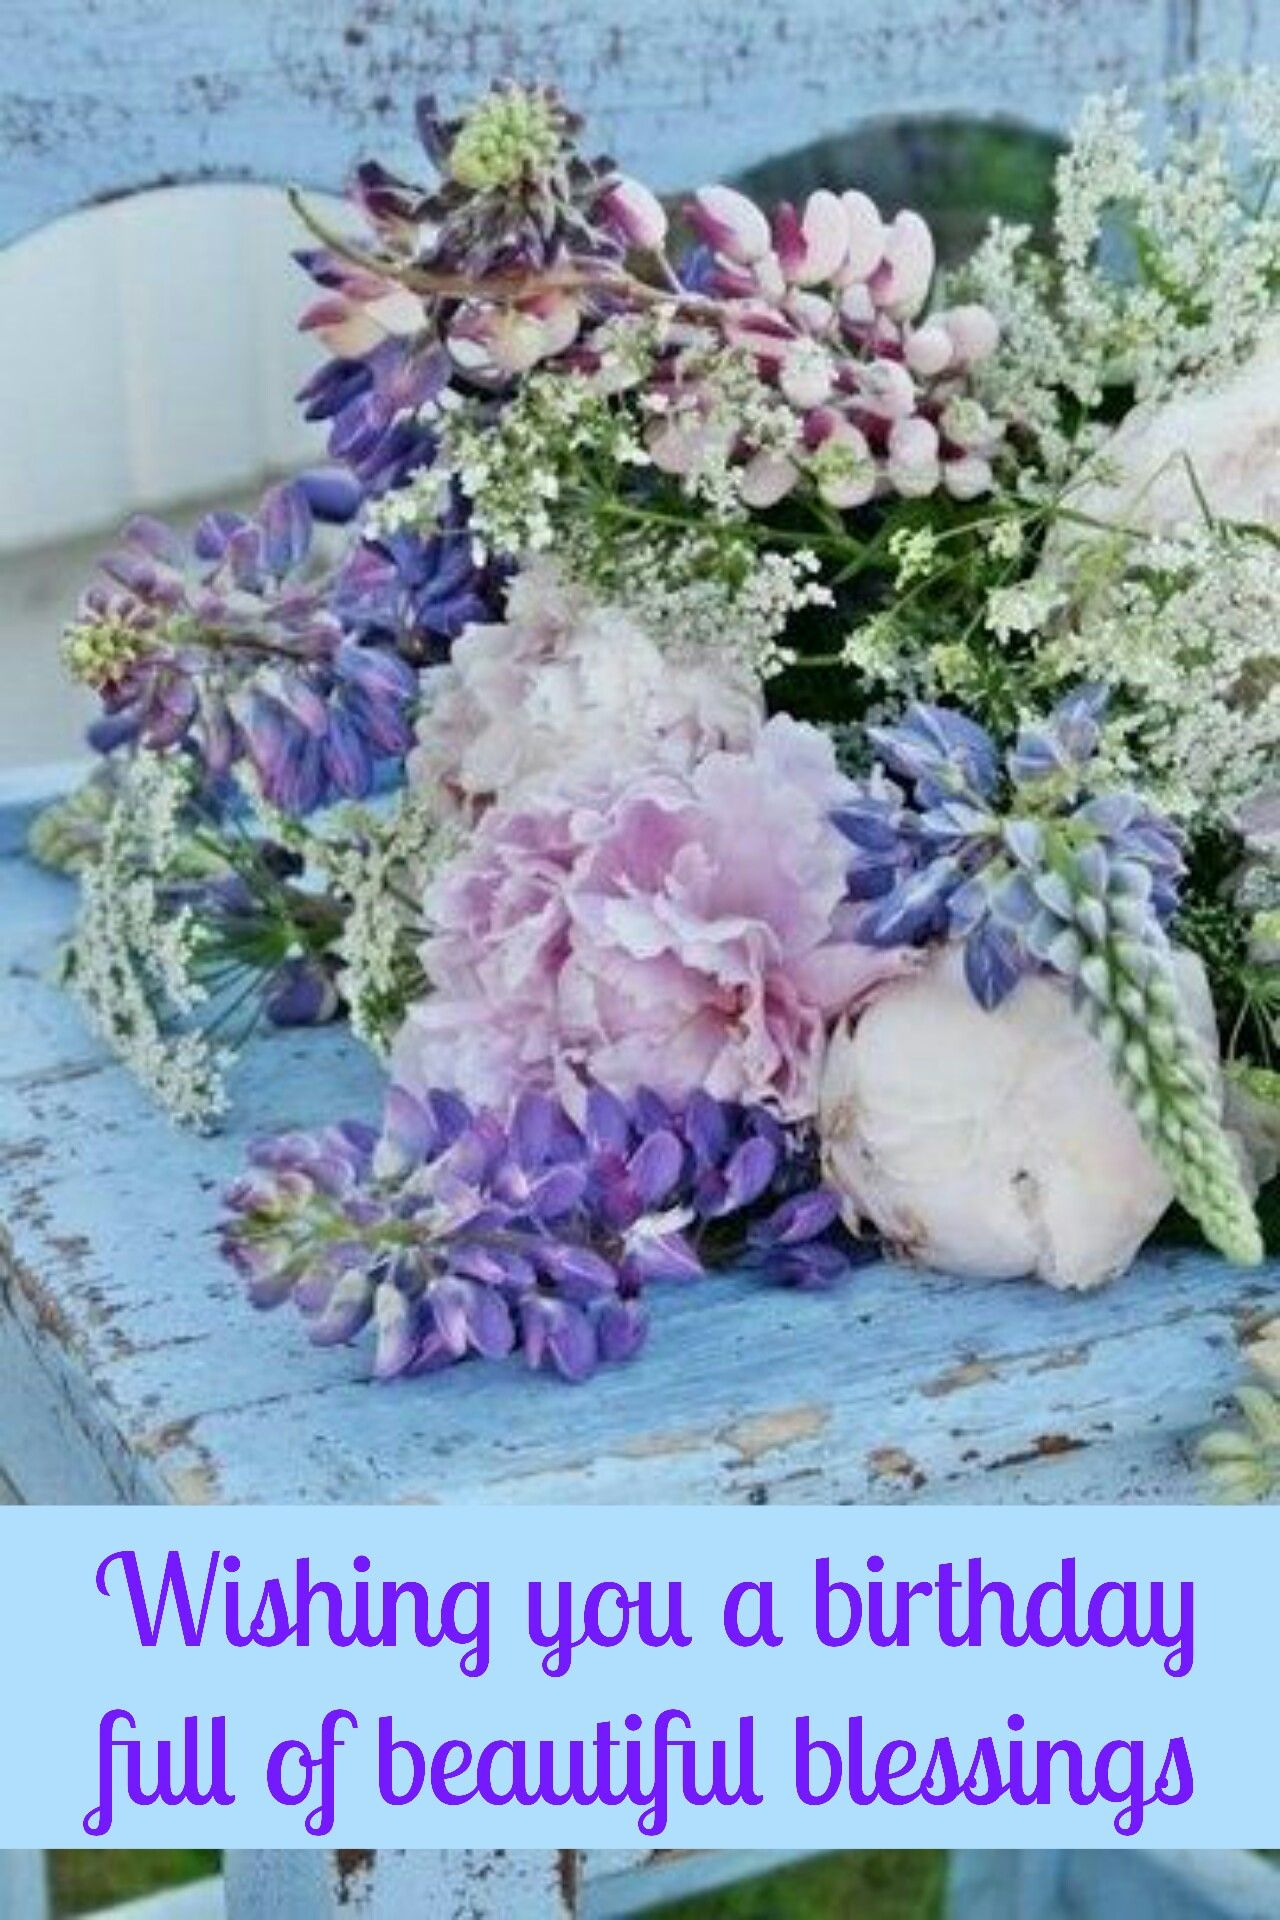 Pin by tammy smith on fbtext birthday cards pinterest blue tables flower arrangement floral arrangements beautiful flowers birthday cards purple flowers flower power firenze italy pink clouds izmirmasajfo